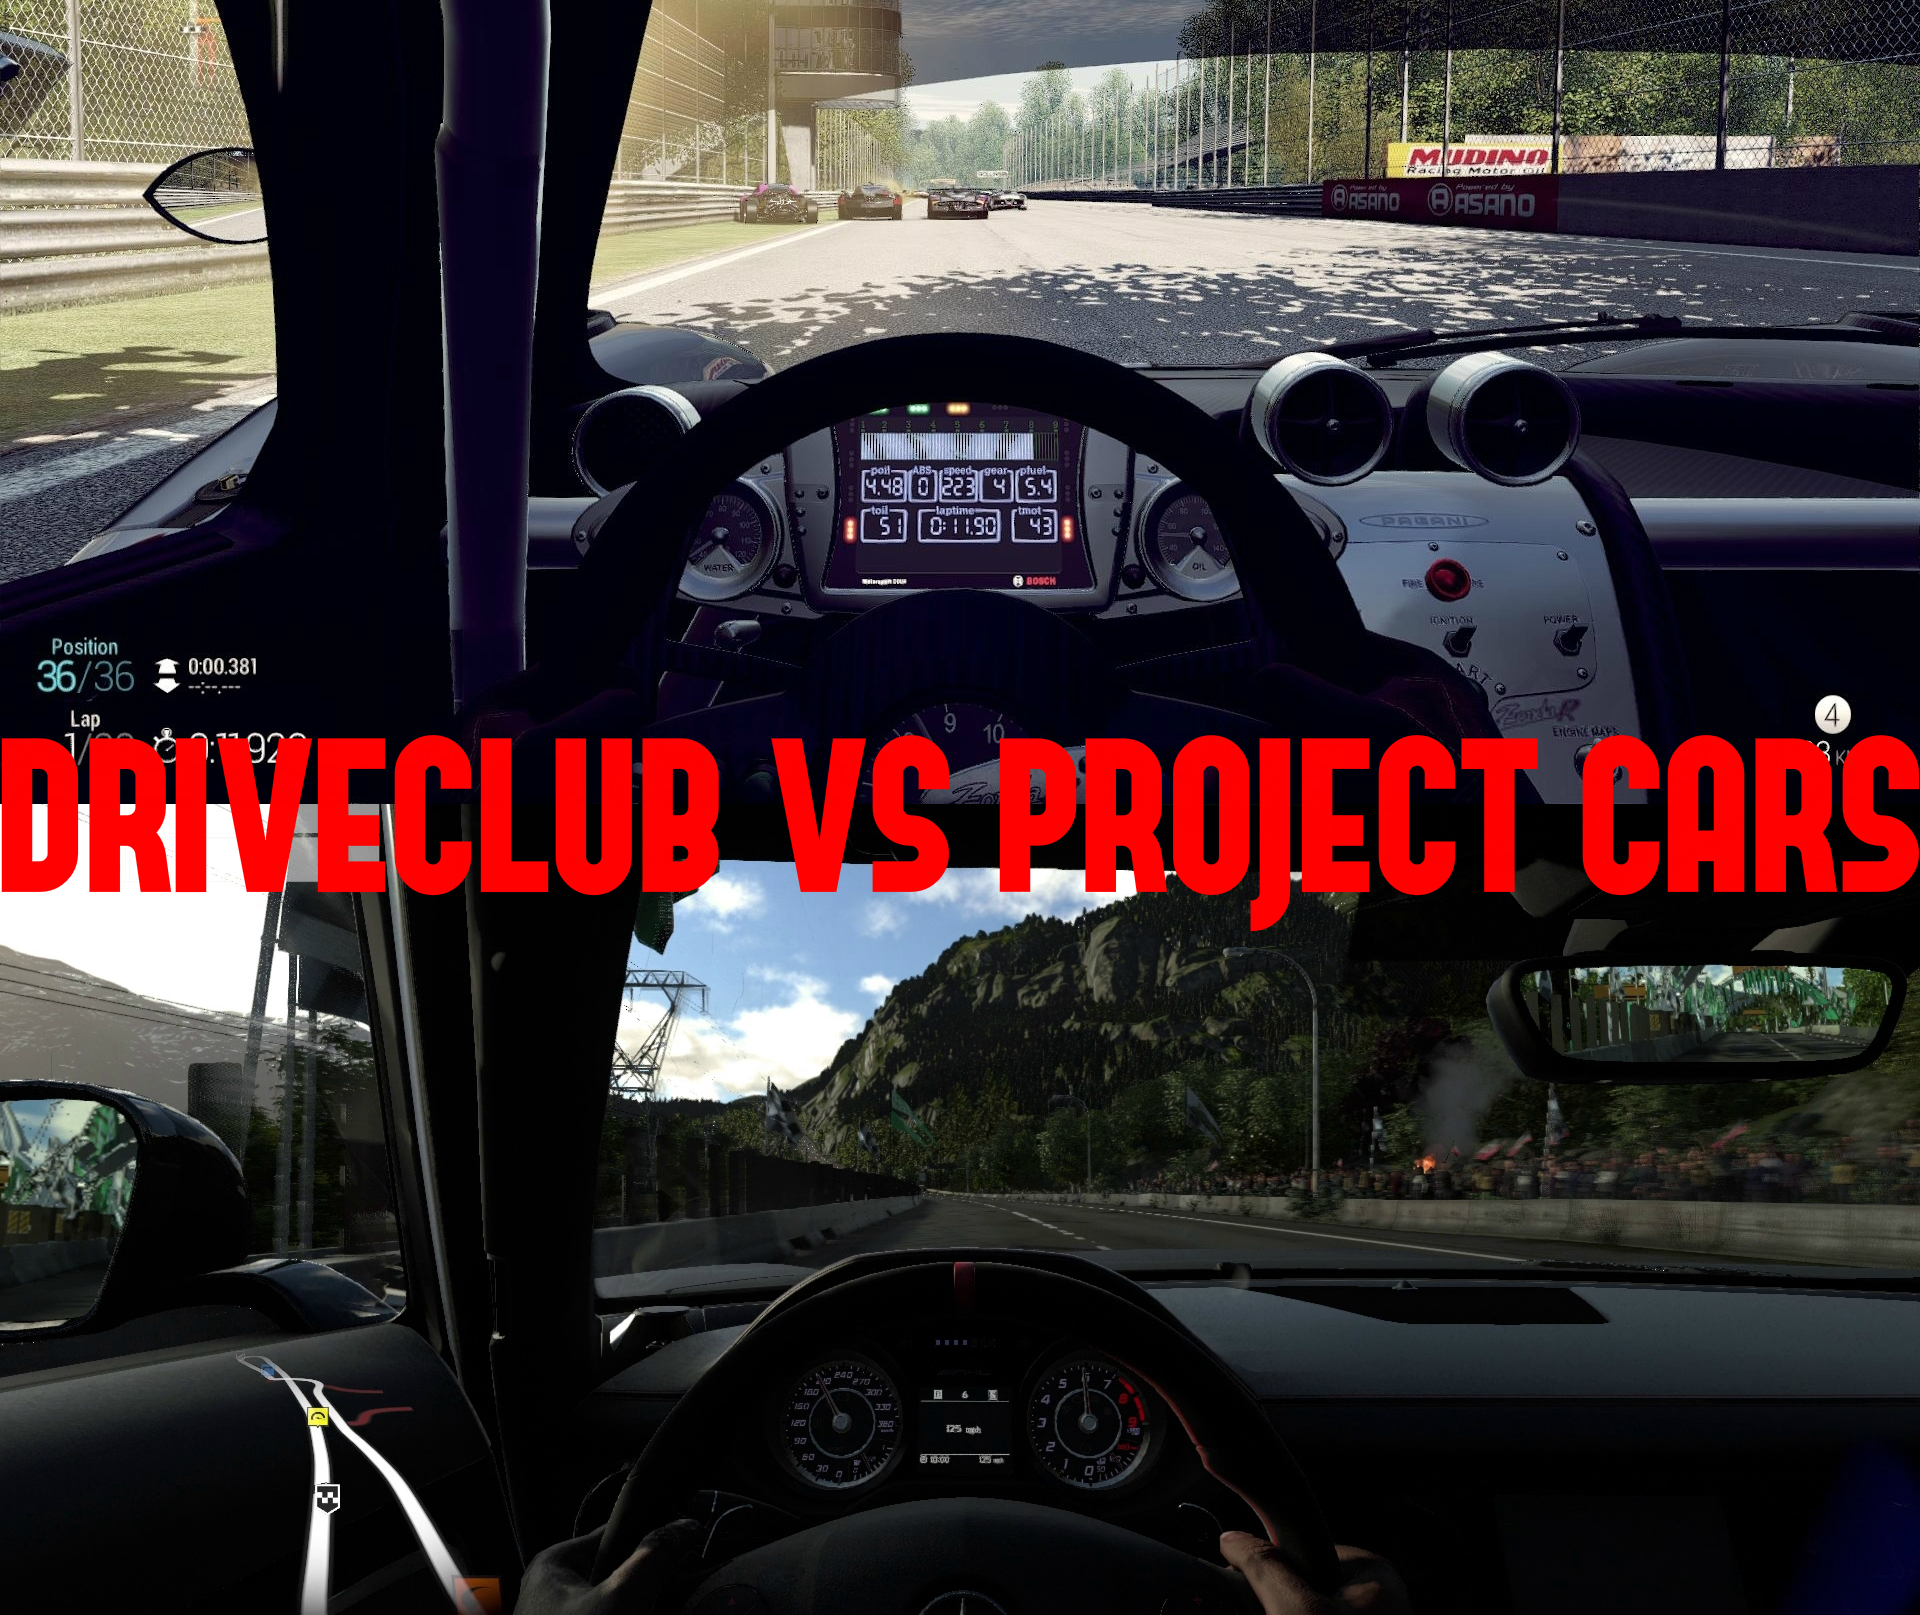 Driveclub Vs Project CARS PlayStation 4 Screenshot Comparison Both